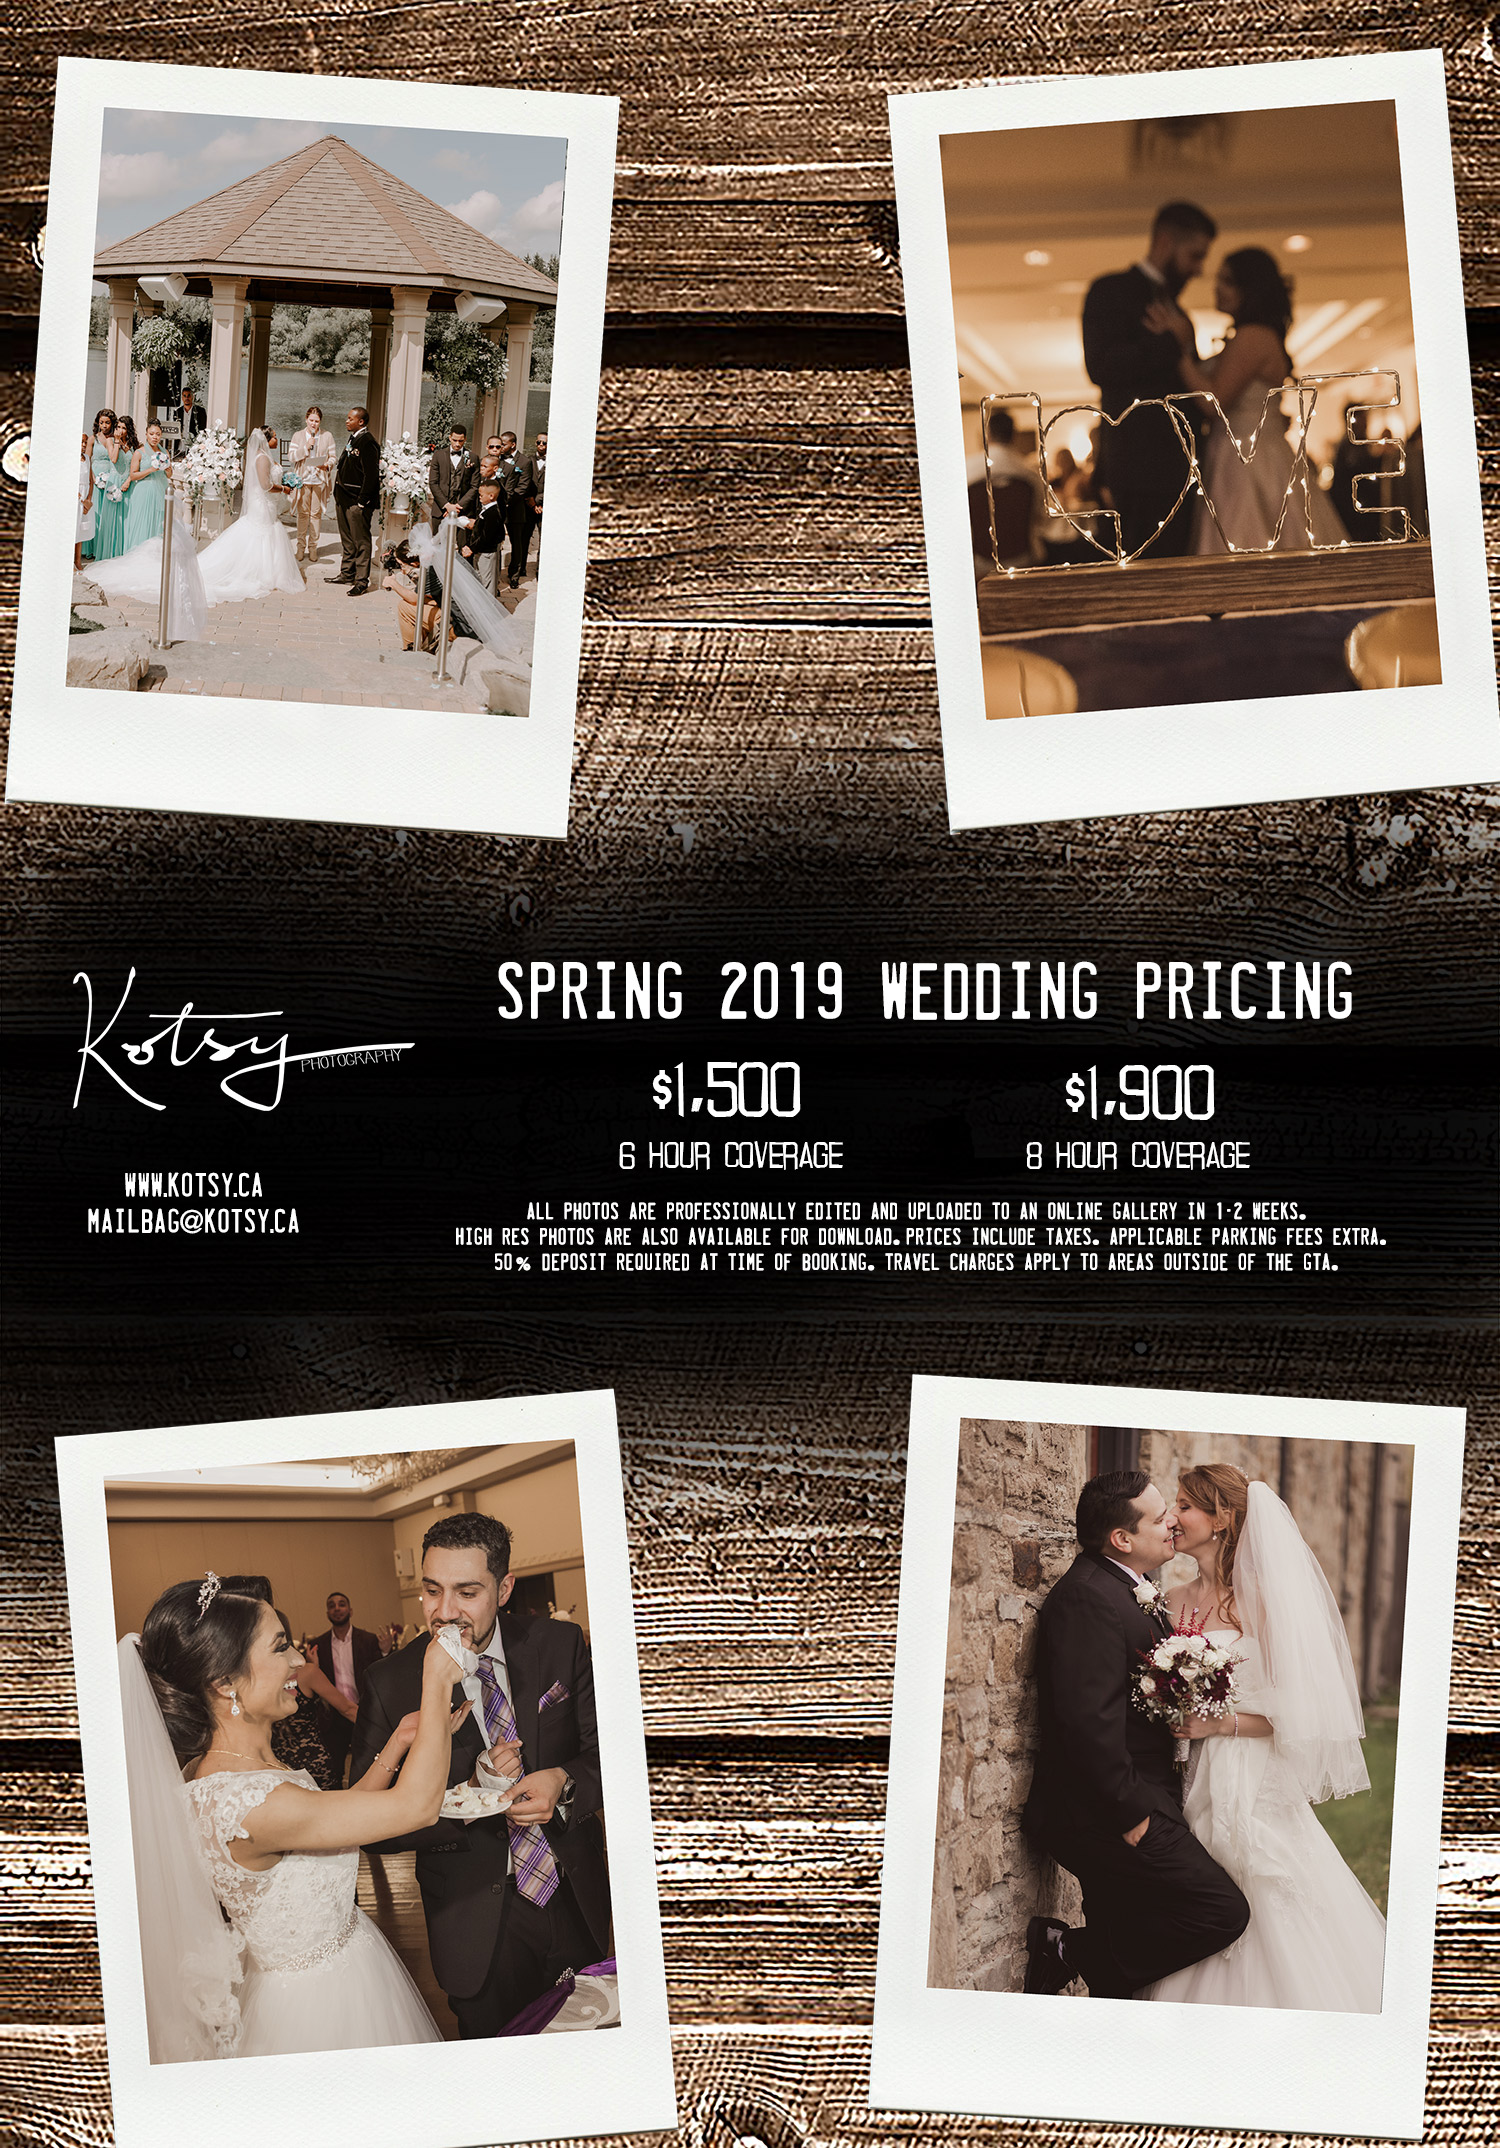 Spring 2019 Wedding Pricing  $1,500 - 6 Hour Coverage $1,900 - 8 Hour Coverage   All photos are professionally edited and uploaded to an online gallery in 1-2 weeks. High res photos are also available for download. prices include taxes. Applicable parking fees extra. 50% deposit required at time of booking. travel charges apply to areas outside of the GTA.